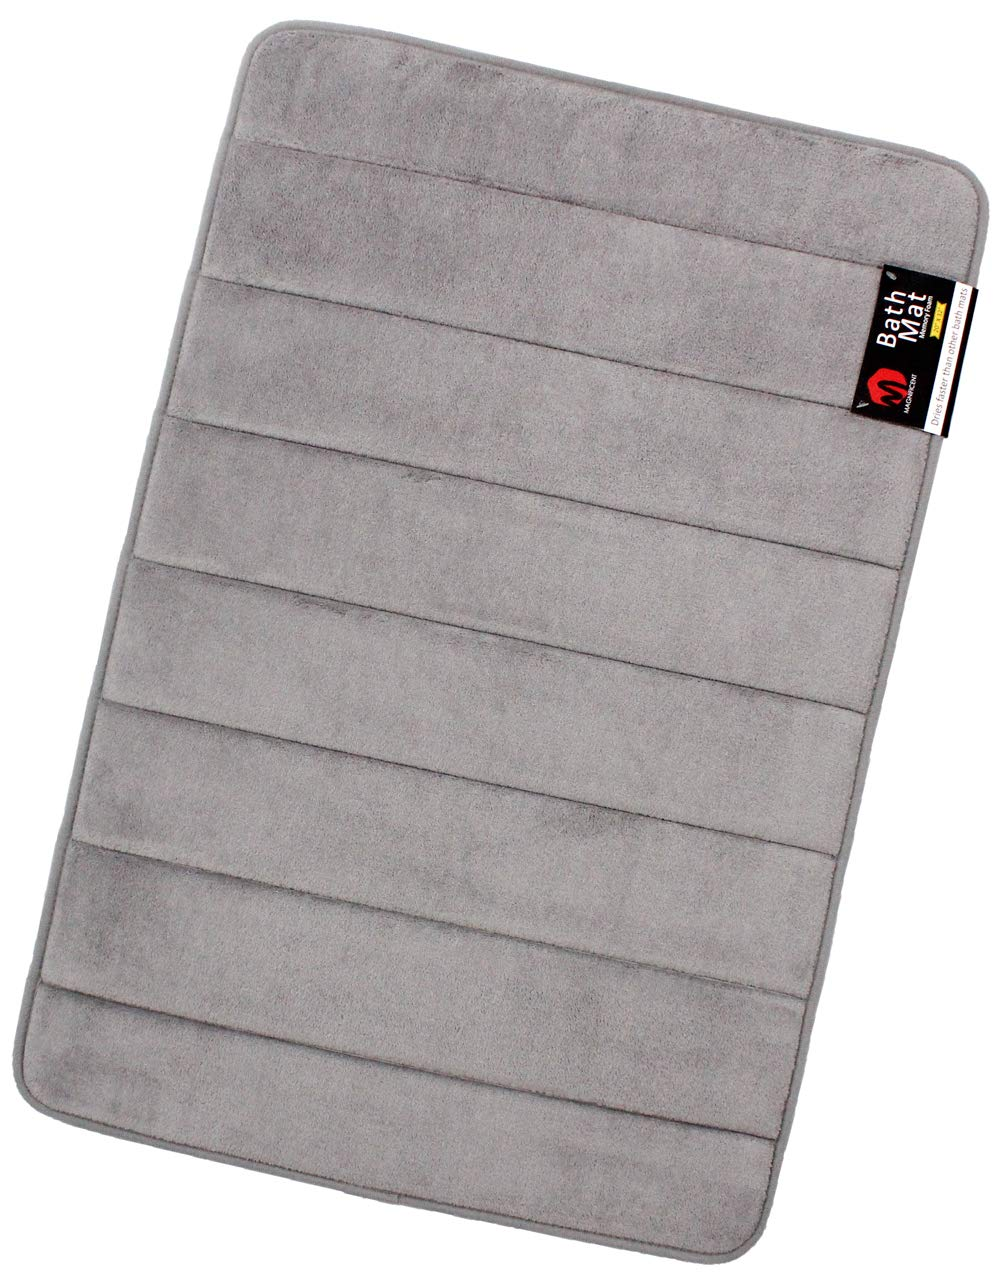 Magnificent Large (20-Inch-by-32-Inch) Soft Non-Slip Memory Foam Bath Mat, Grey